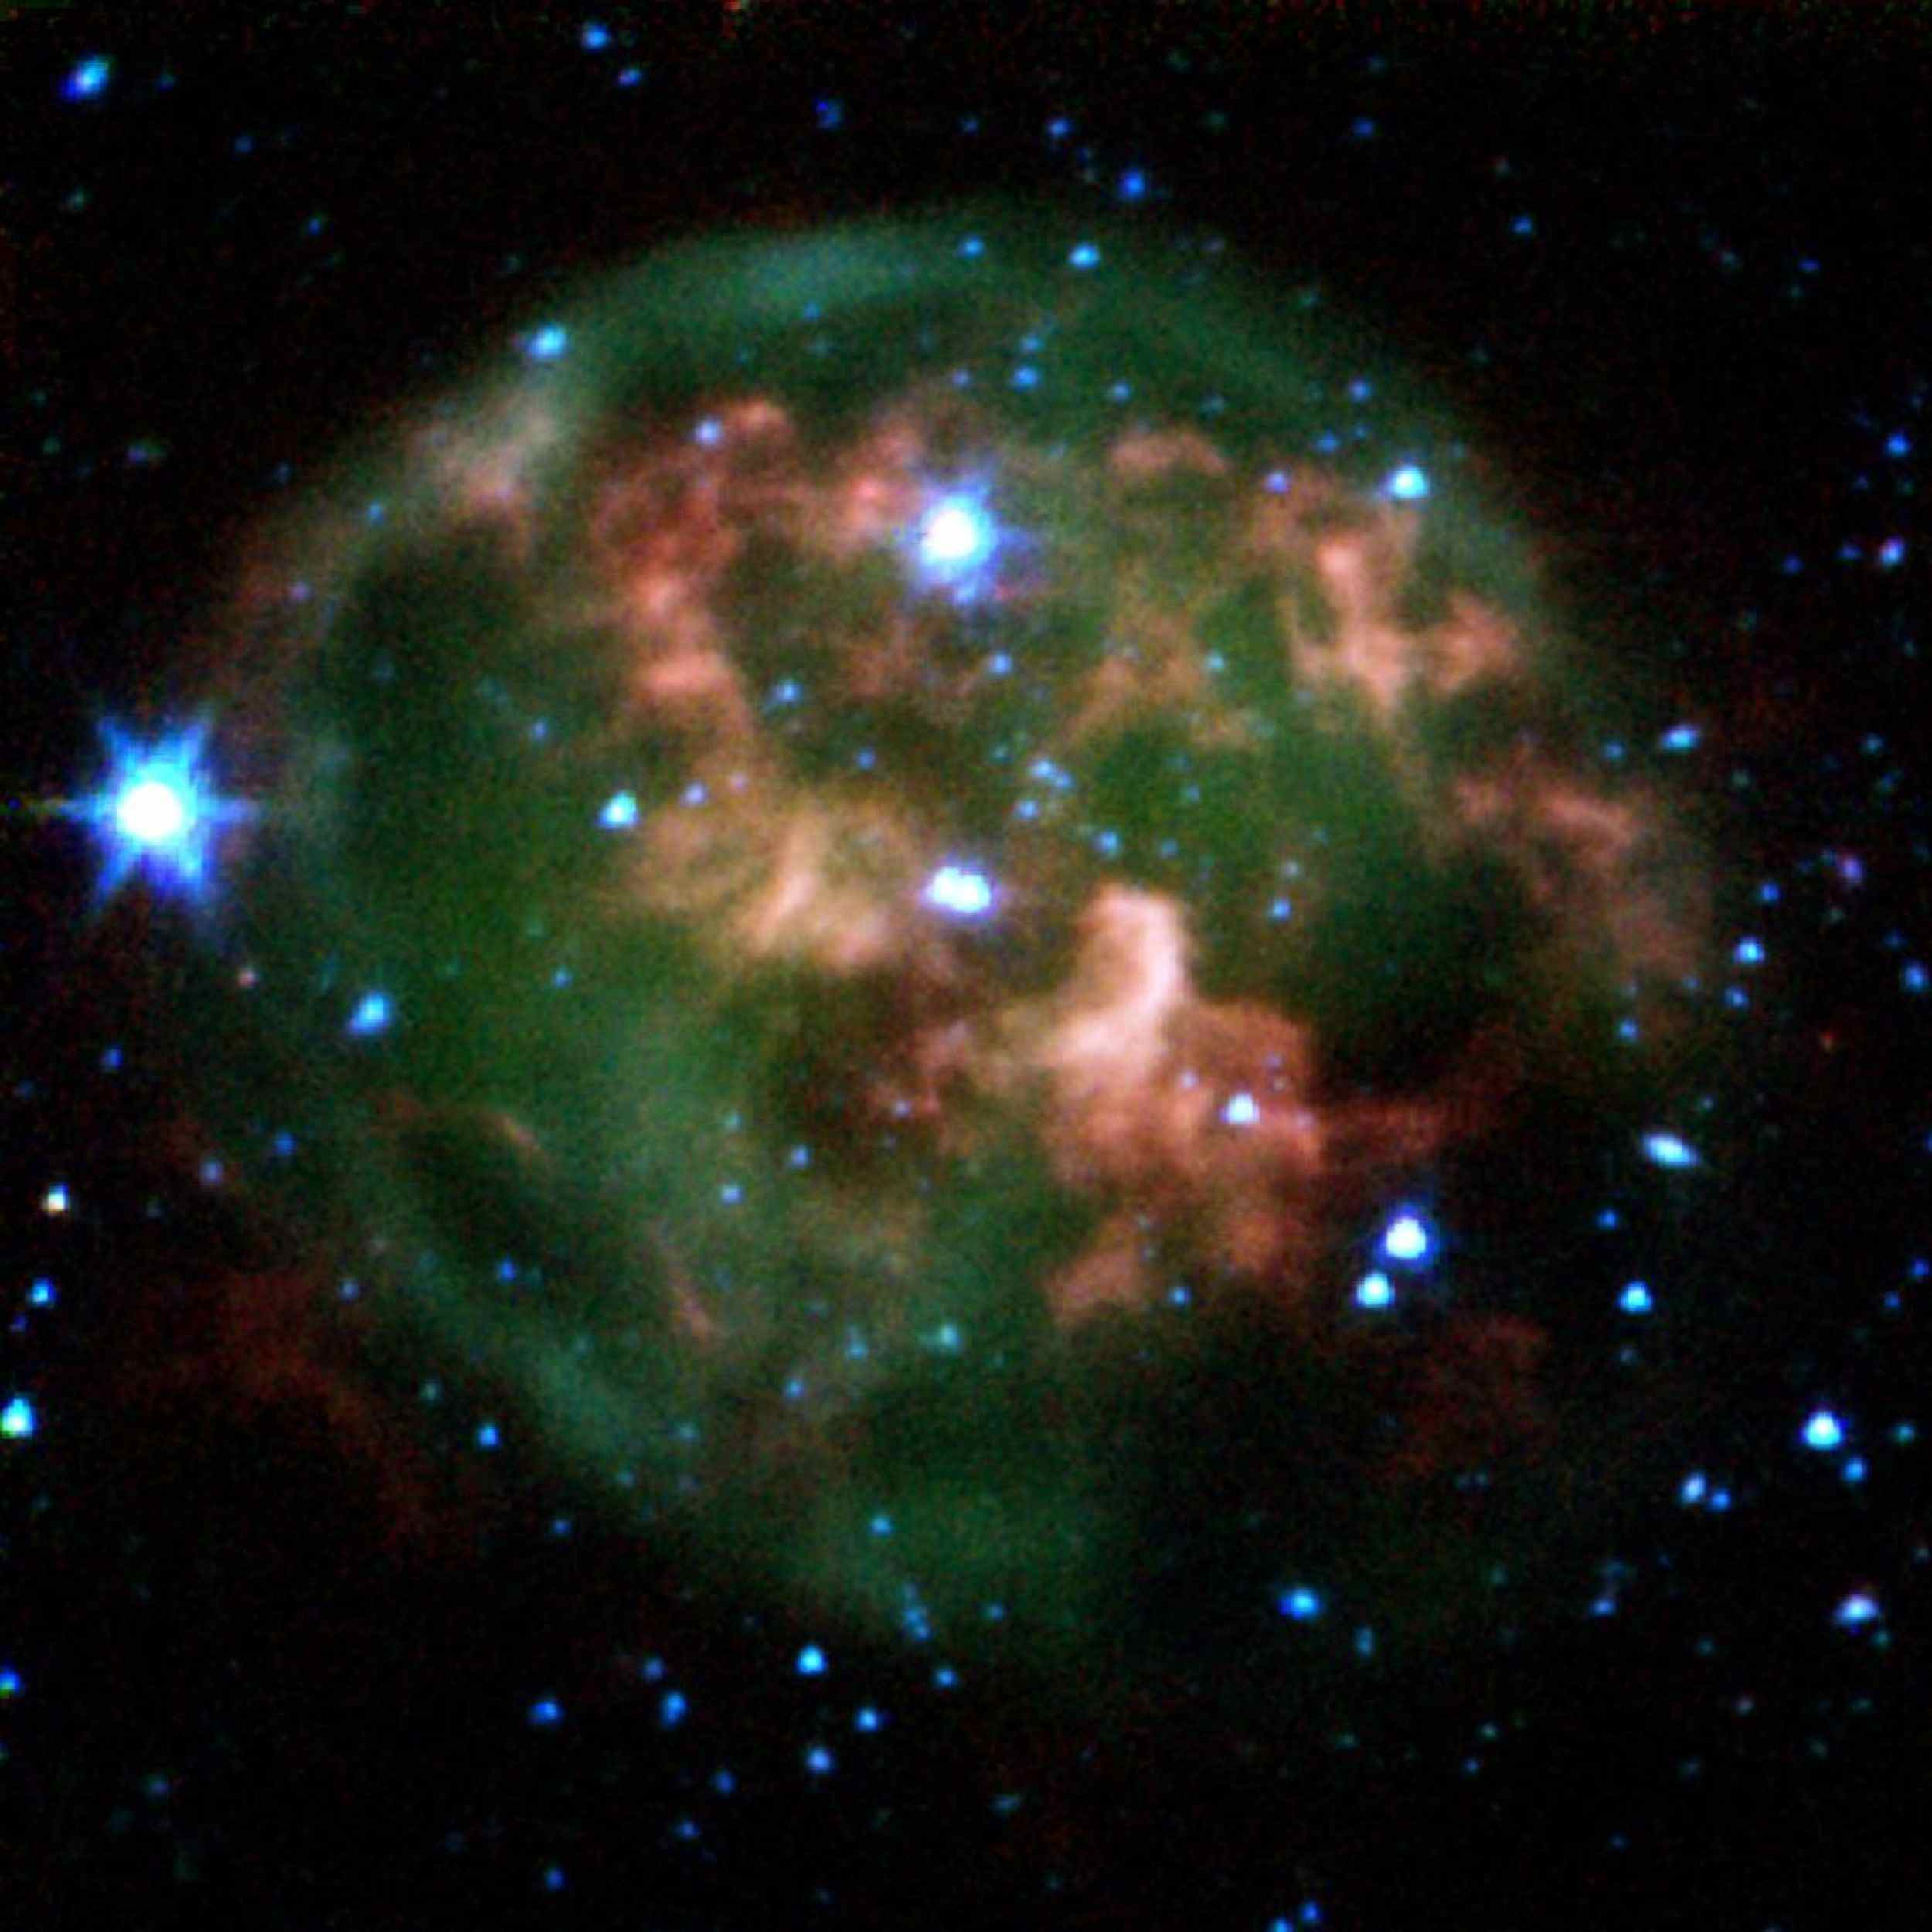 This false-color image from NASA's Spitzer Space Telescope shows a dying star (center) surrounded by a cloud of glowing gas and dust.